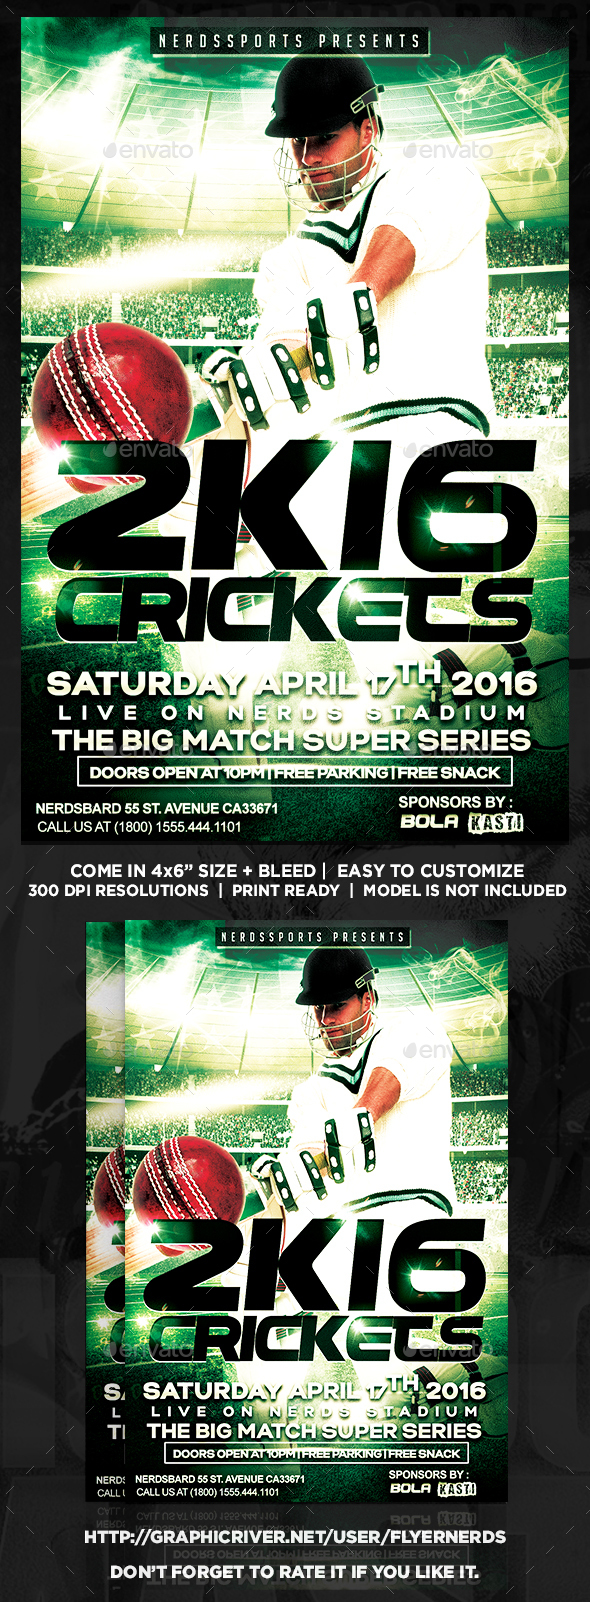 Crickets 2K16 Championships Sports Flyer - Sports Events